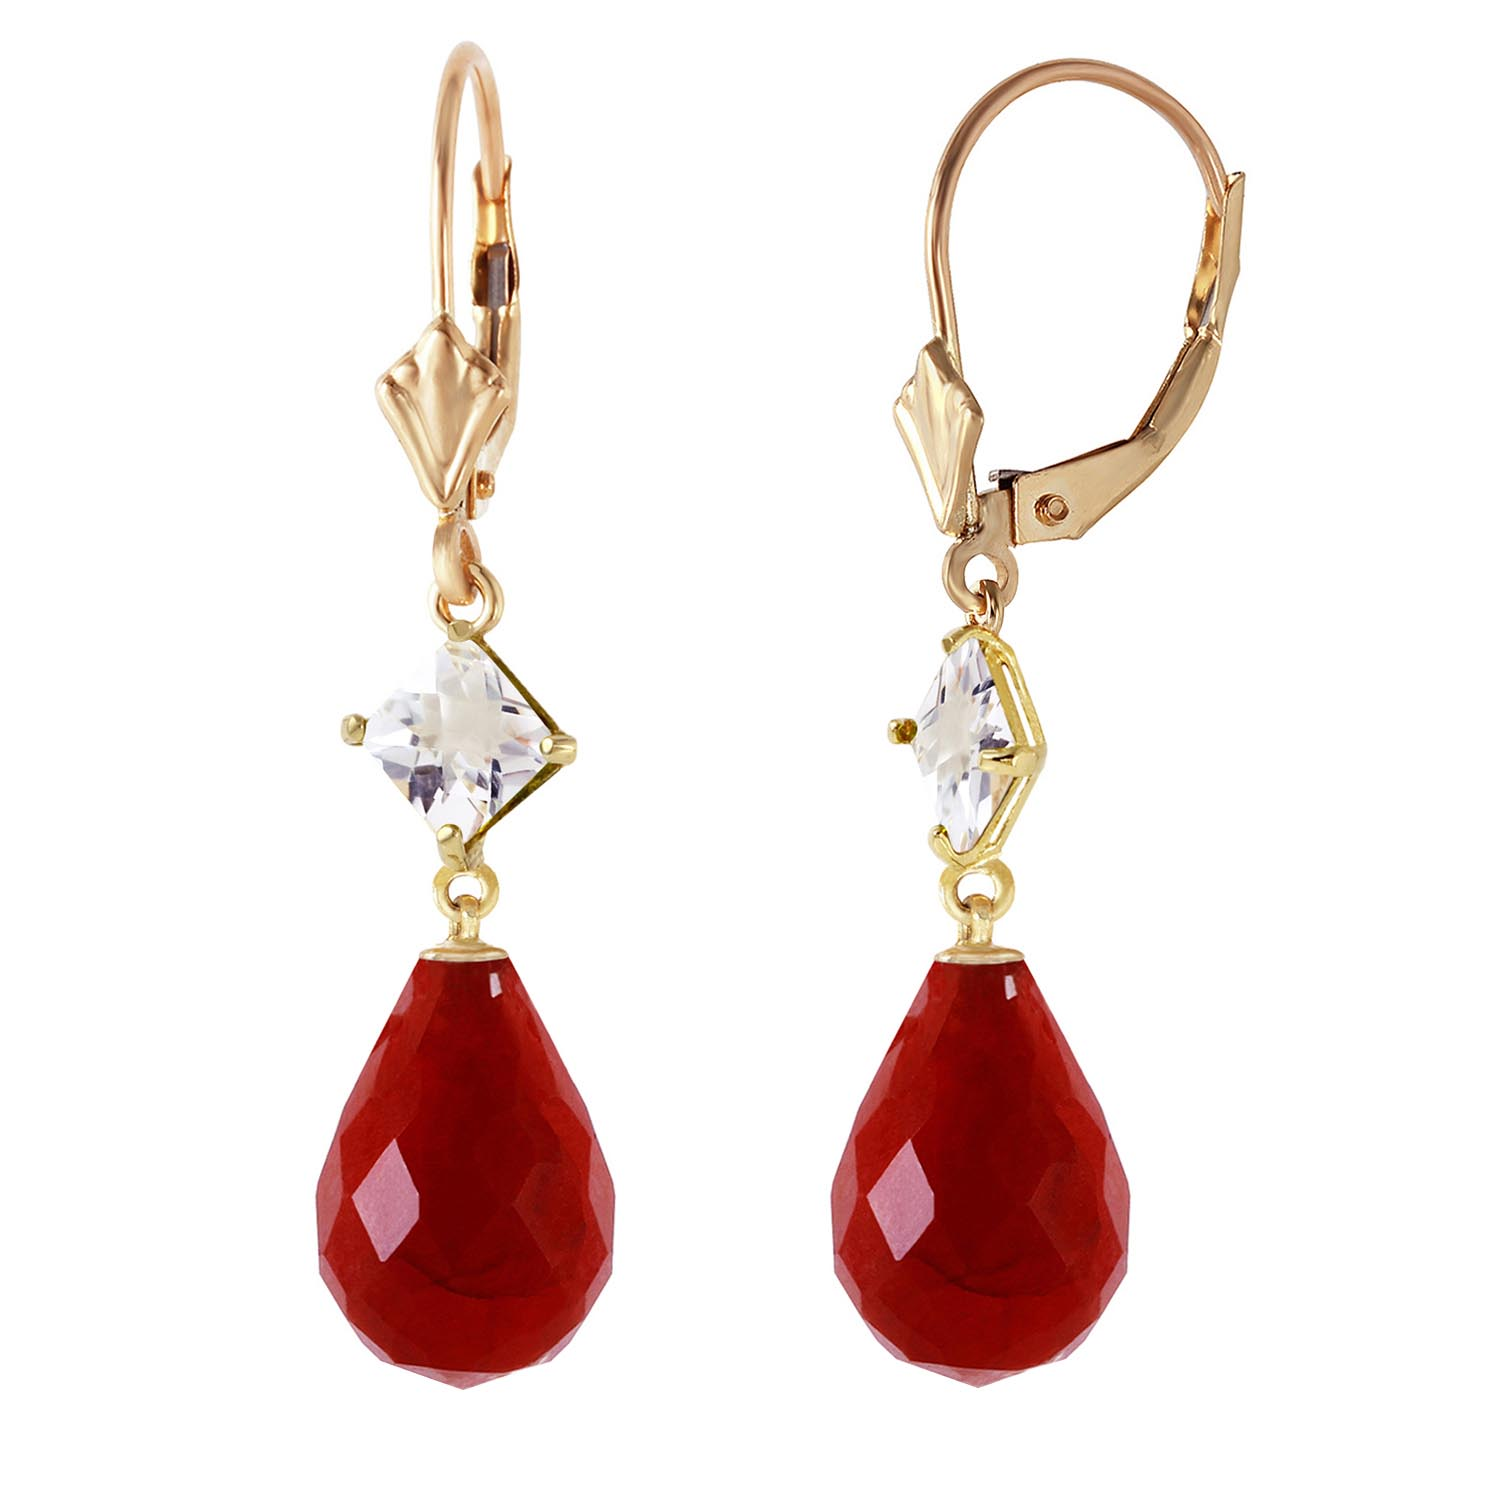 Ruby & White Topaz Drop Earrings in 9ct Gold